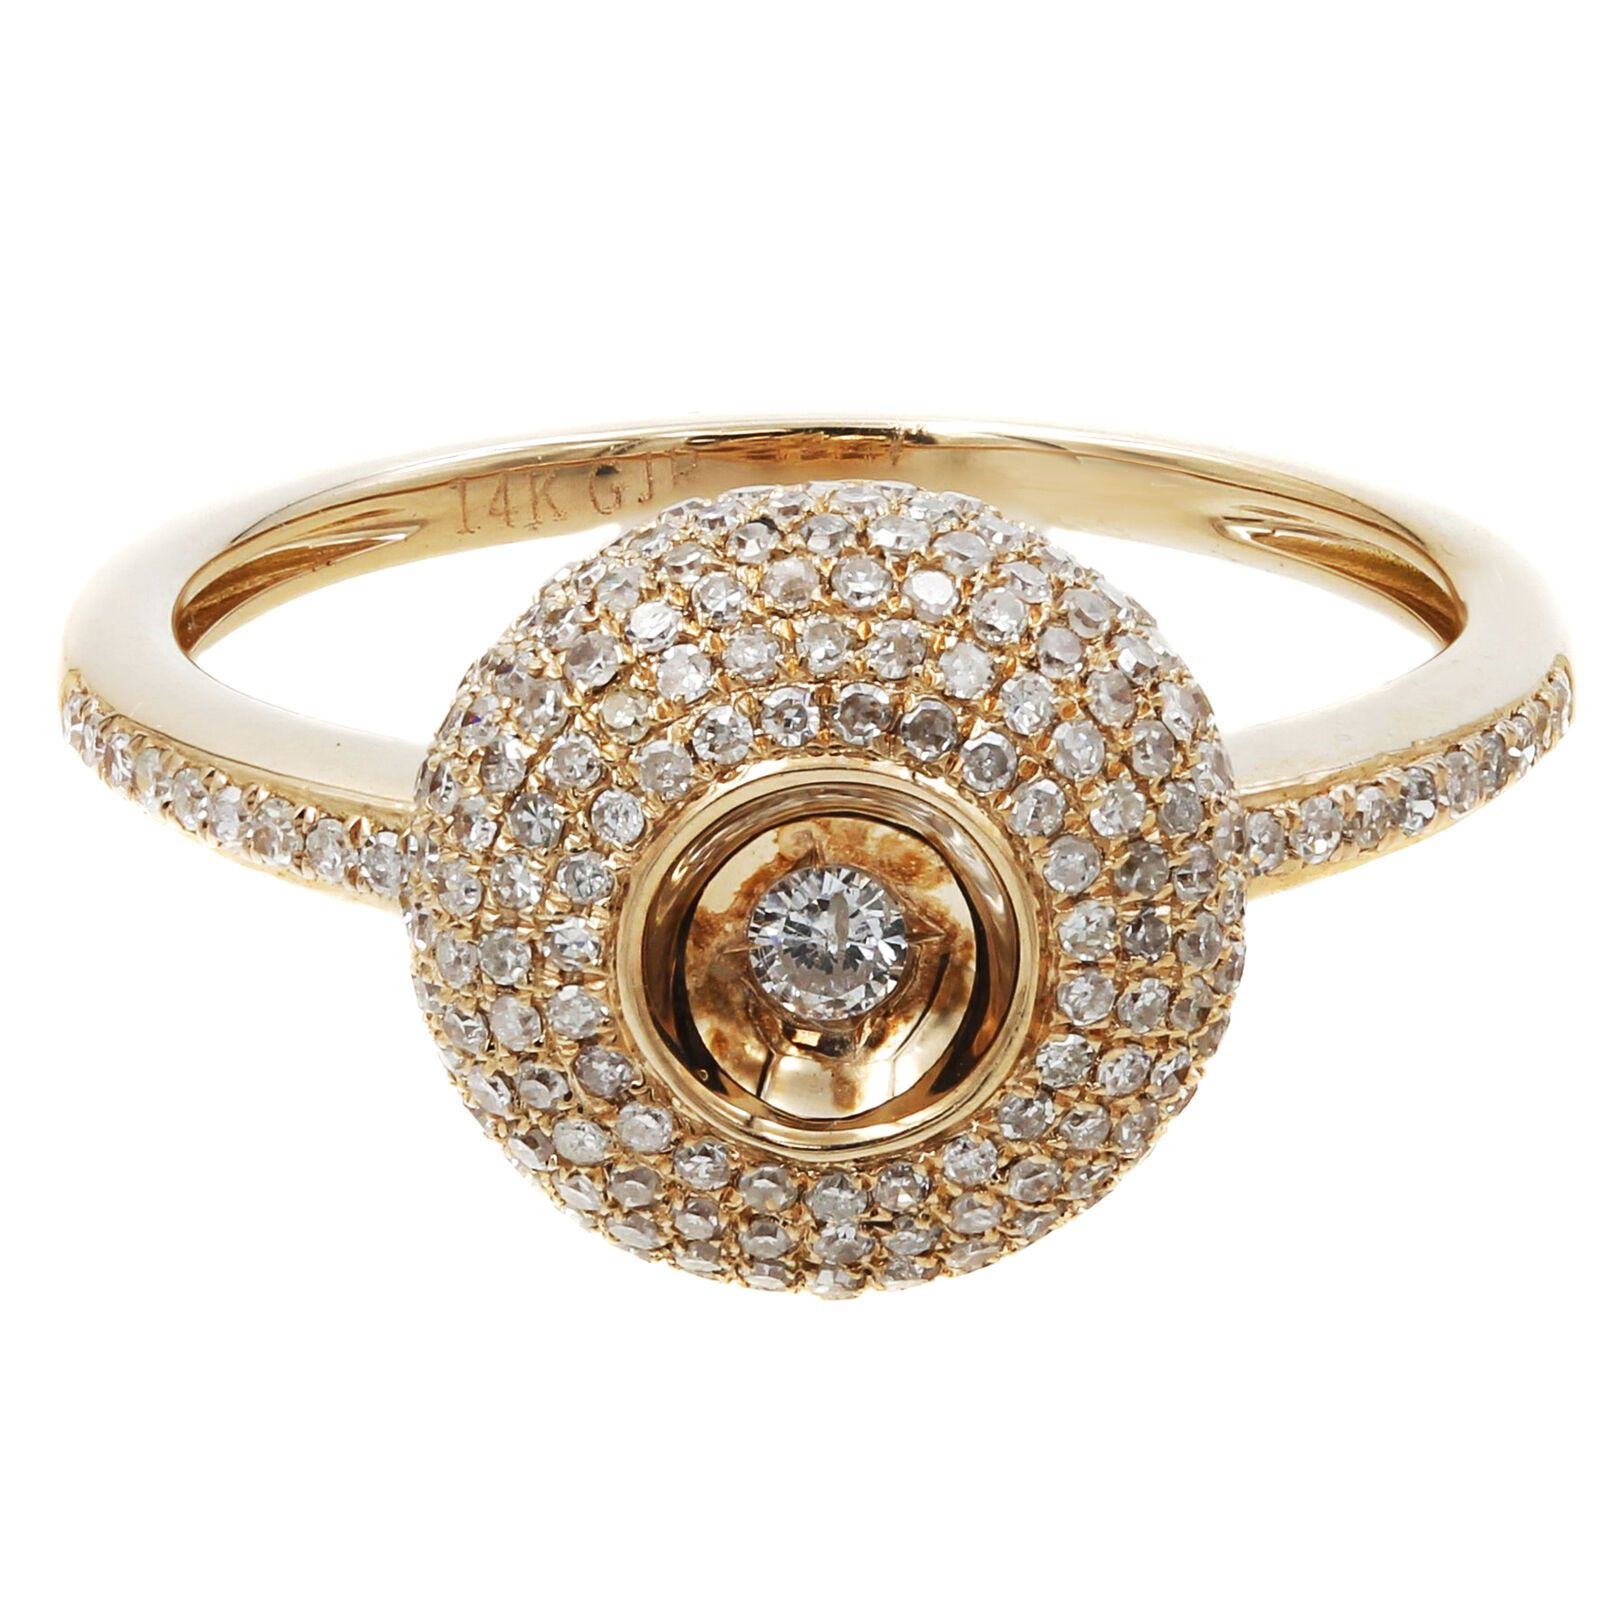 10k Yellow Gold Womens Diamond Fashion Ring 1 12 Carat Tw Fashion Rings Round Diamond Ring Gold Rings Jewelry